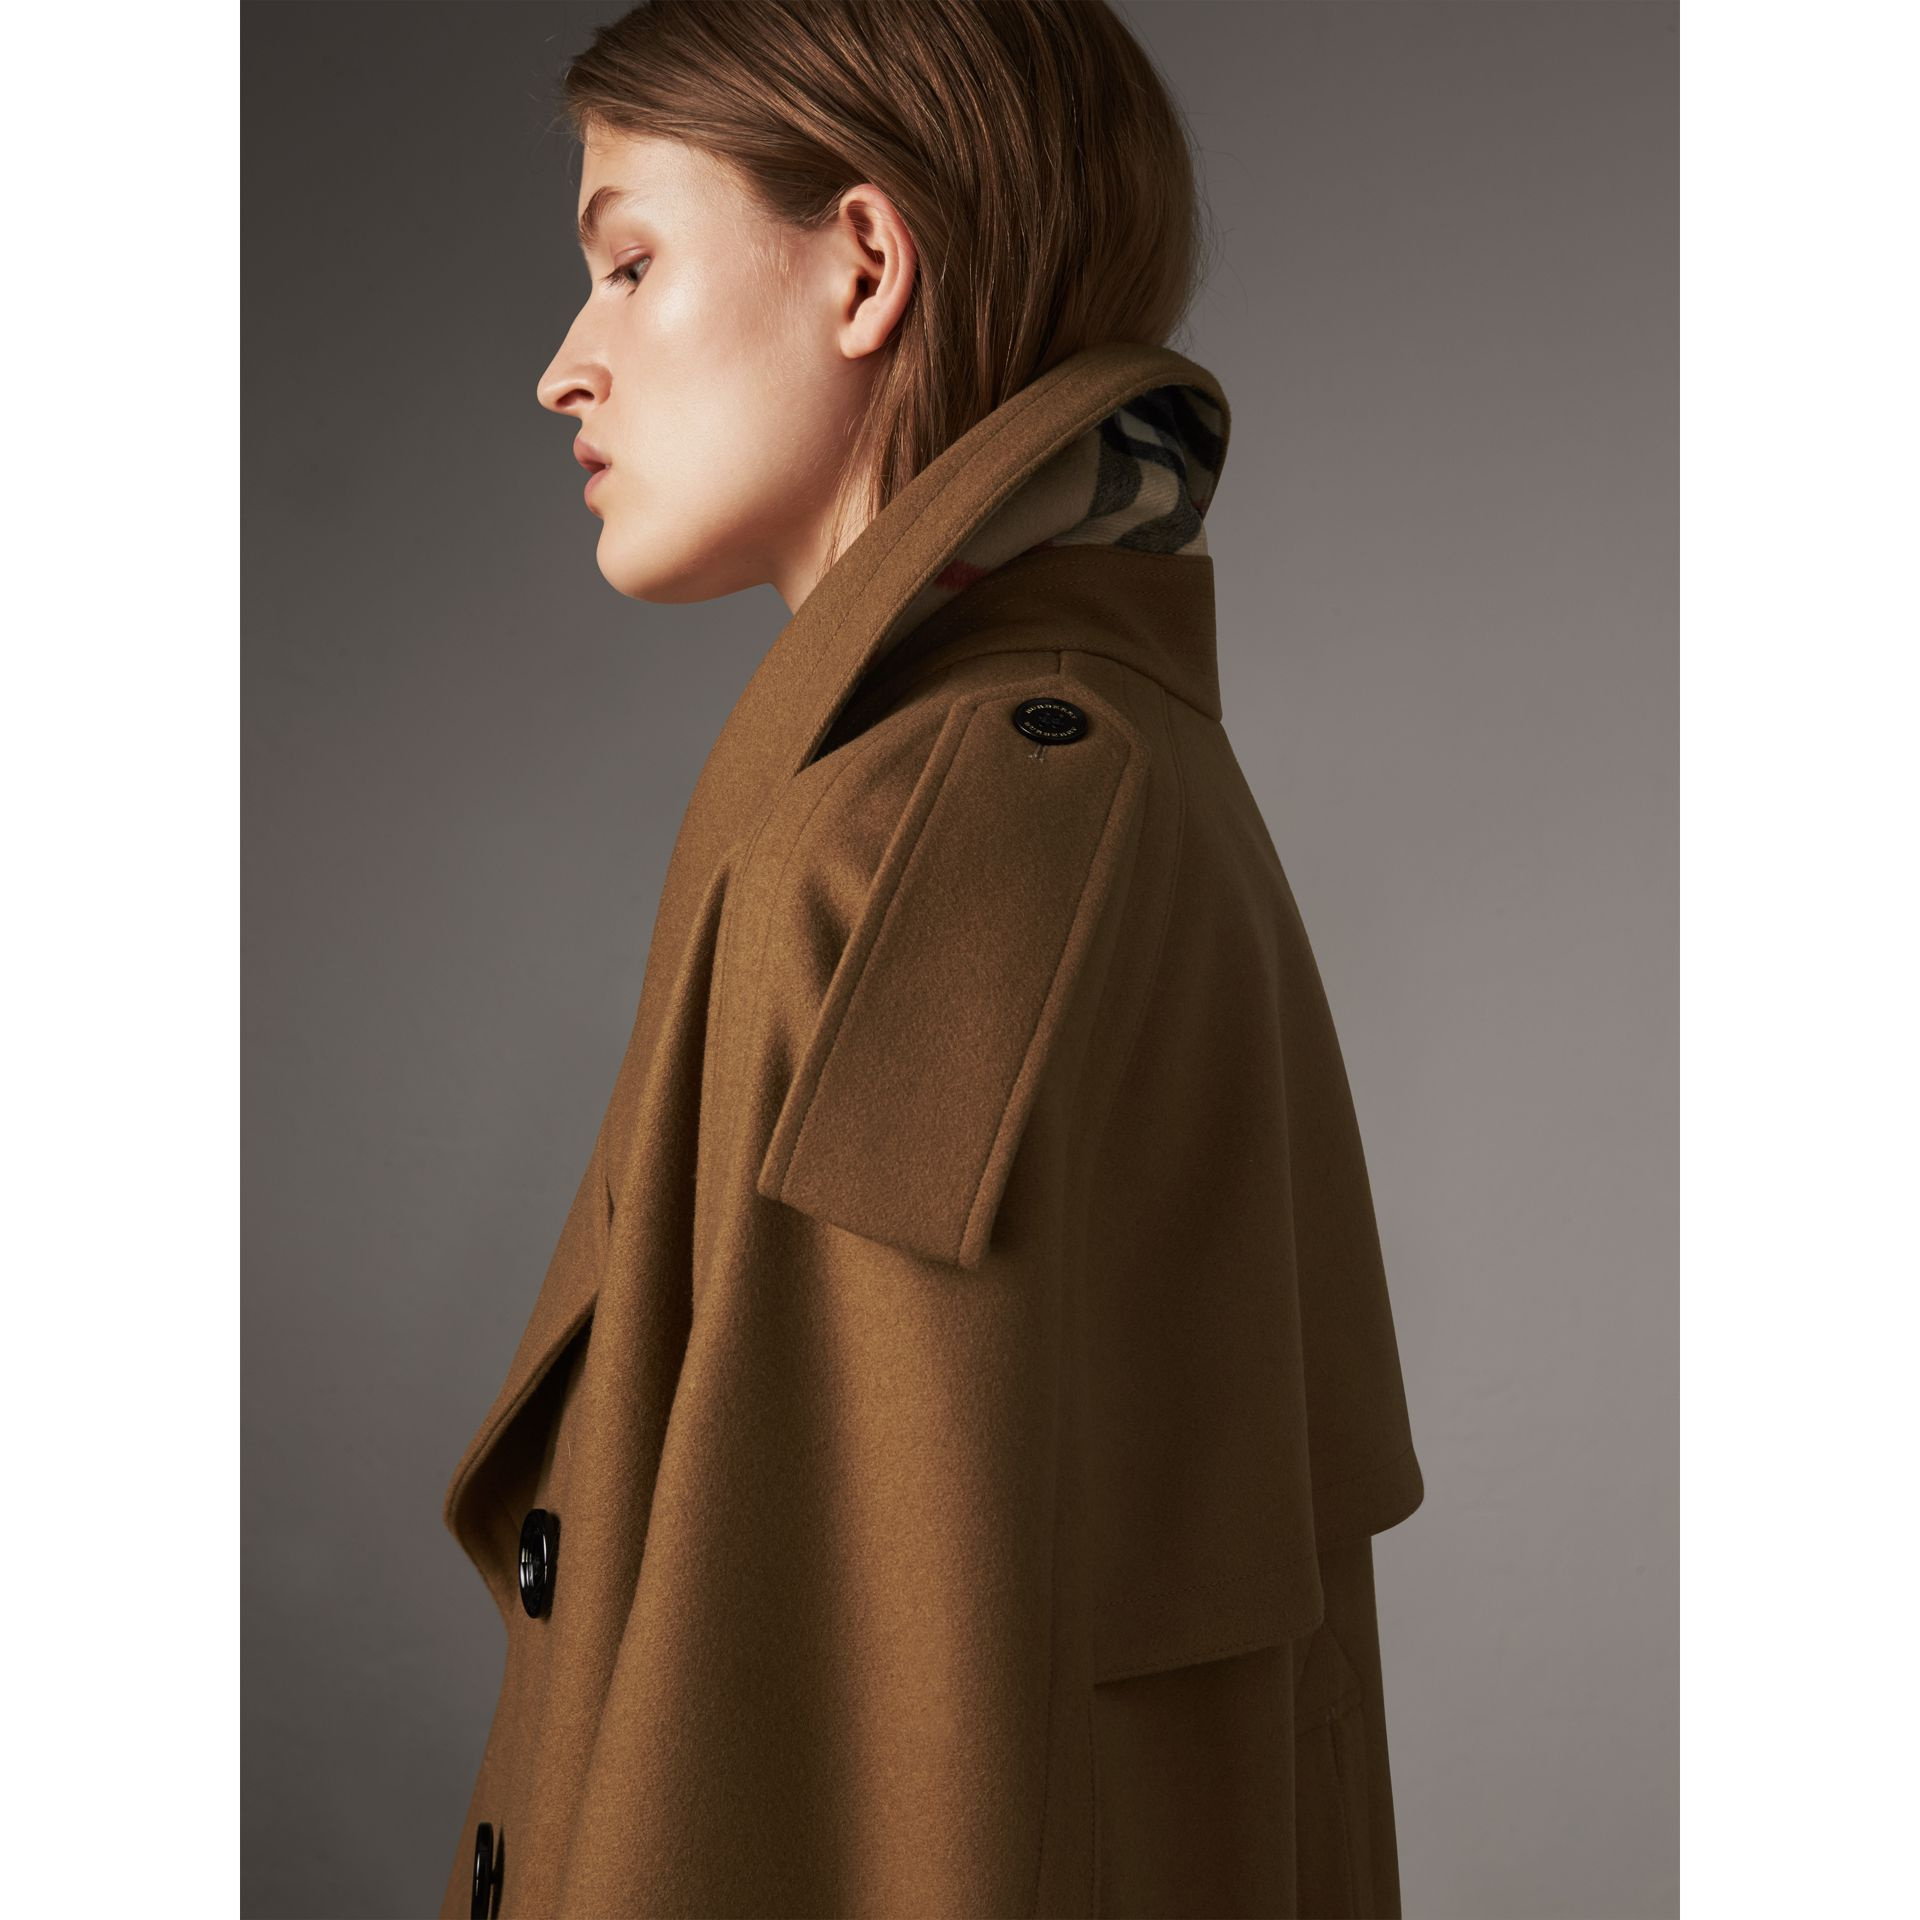 Wool Double-breasted Military Cape in Camel - Women | Burberry Hong Kong - gallery image 2